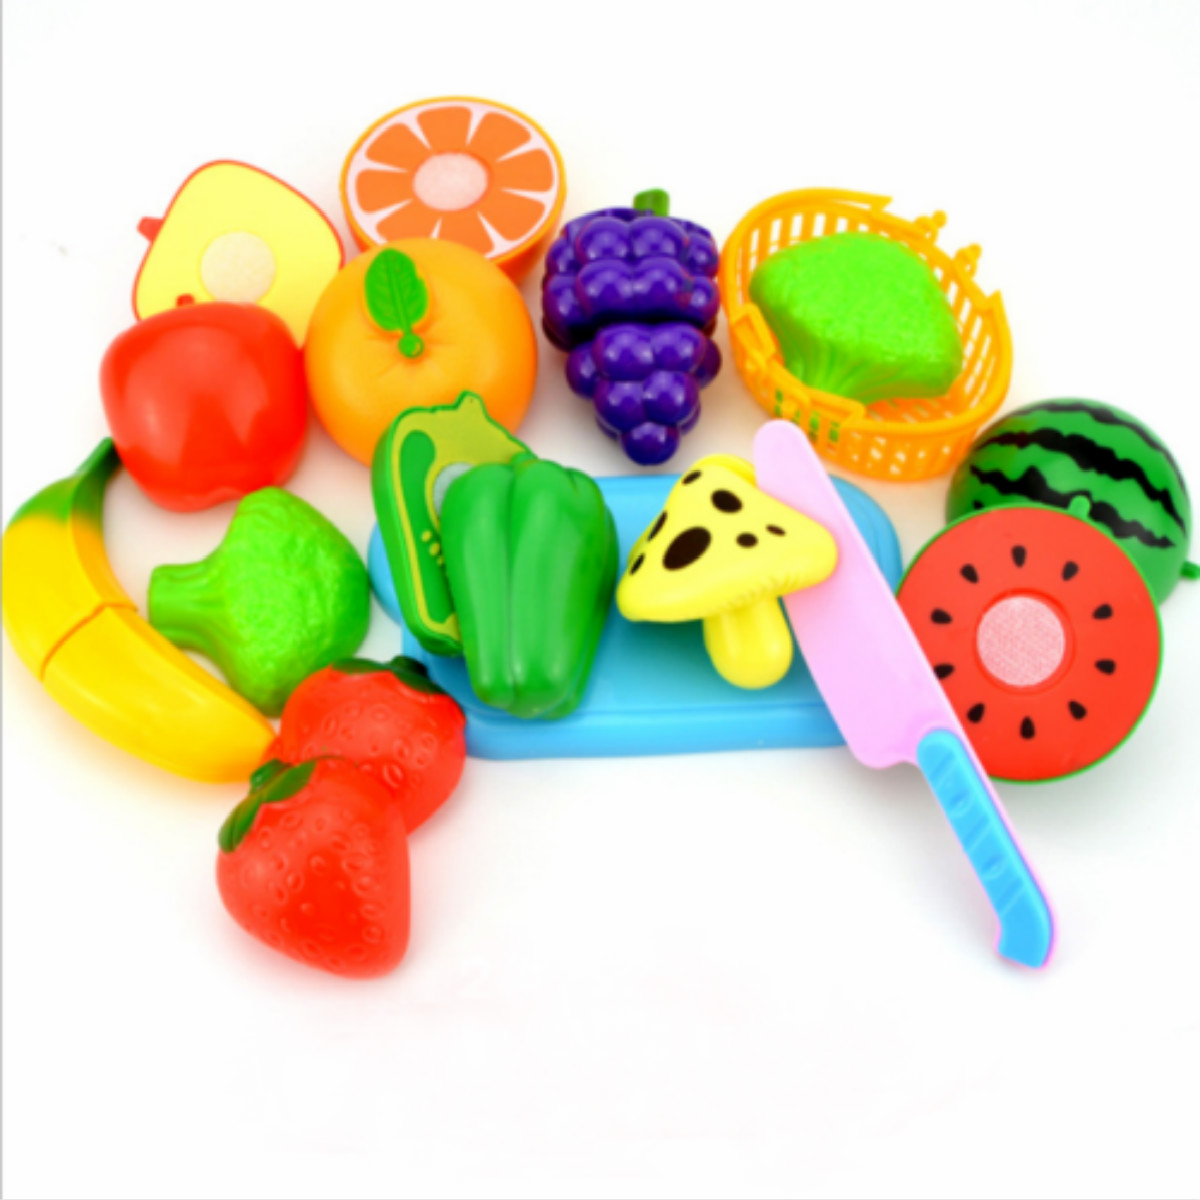 New Kids Kitchen Fruit Vegetable Food Pretend Role Play Cutting Set Toys Affordable